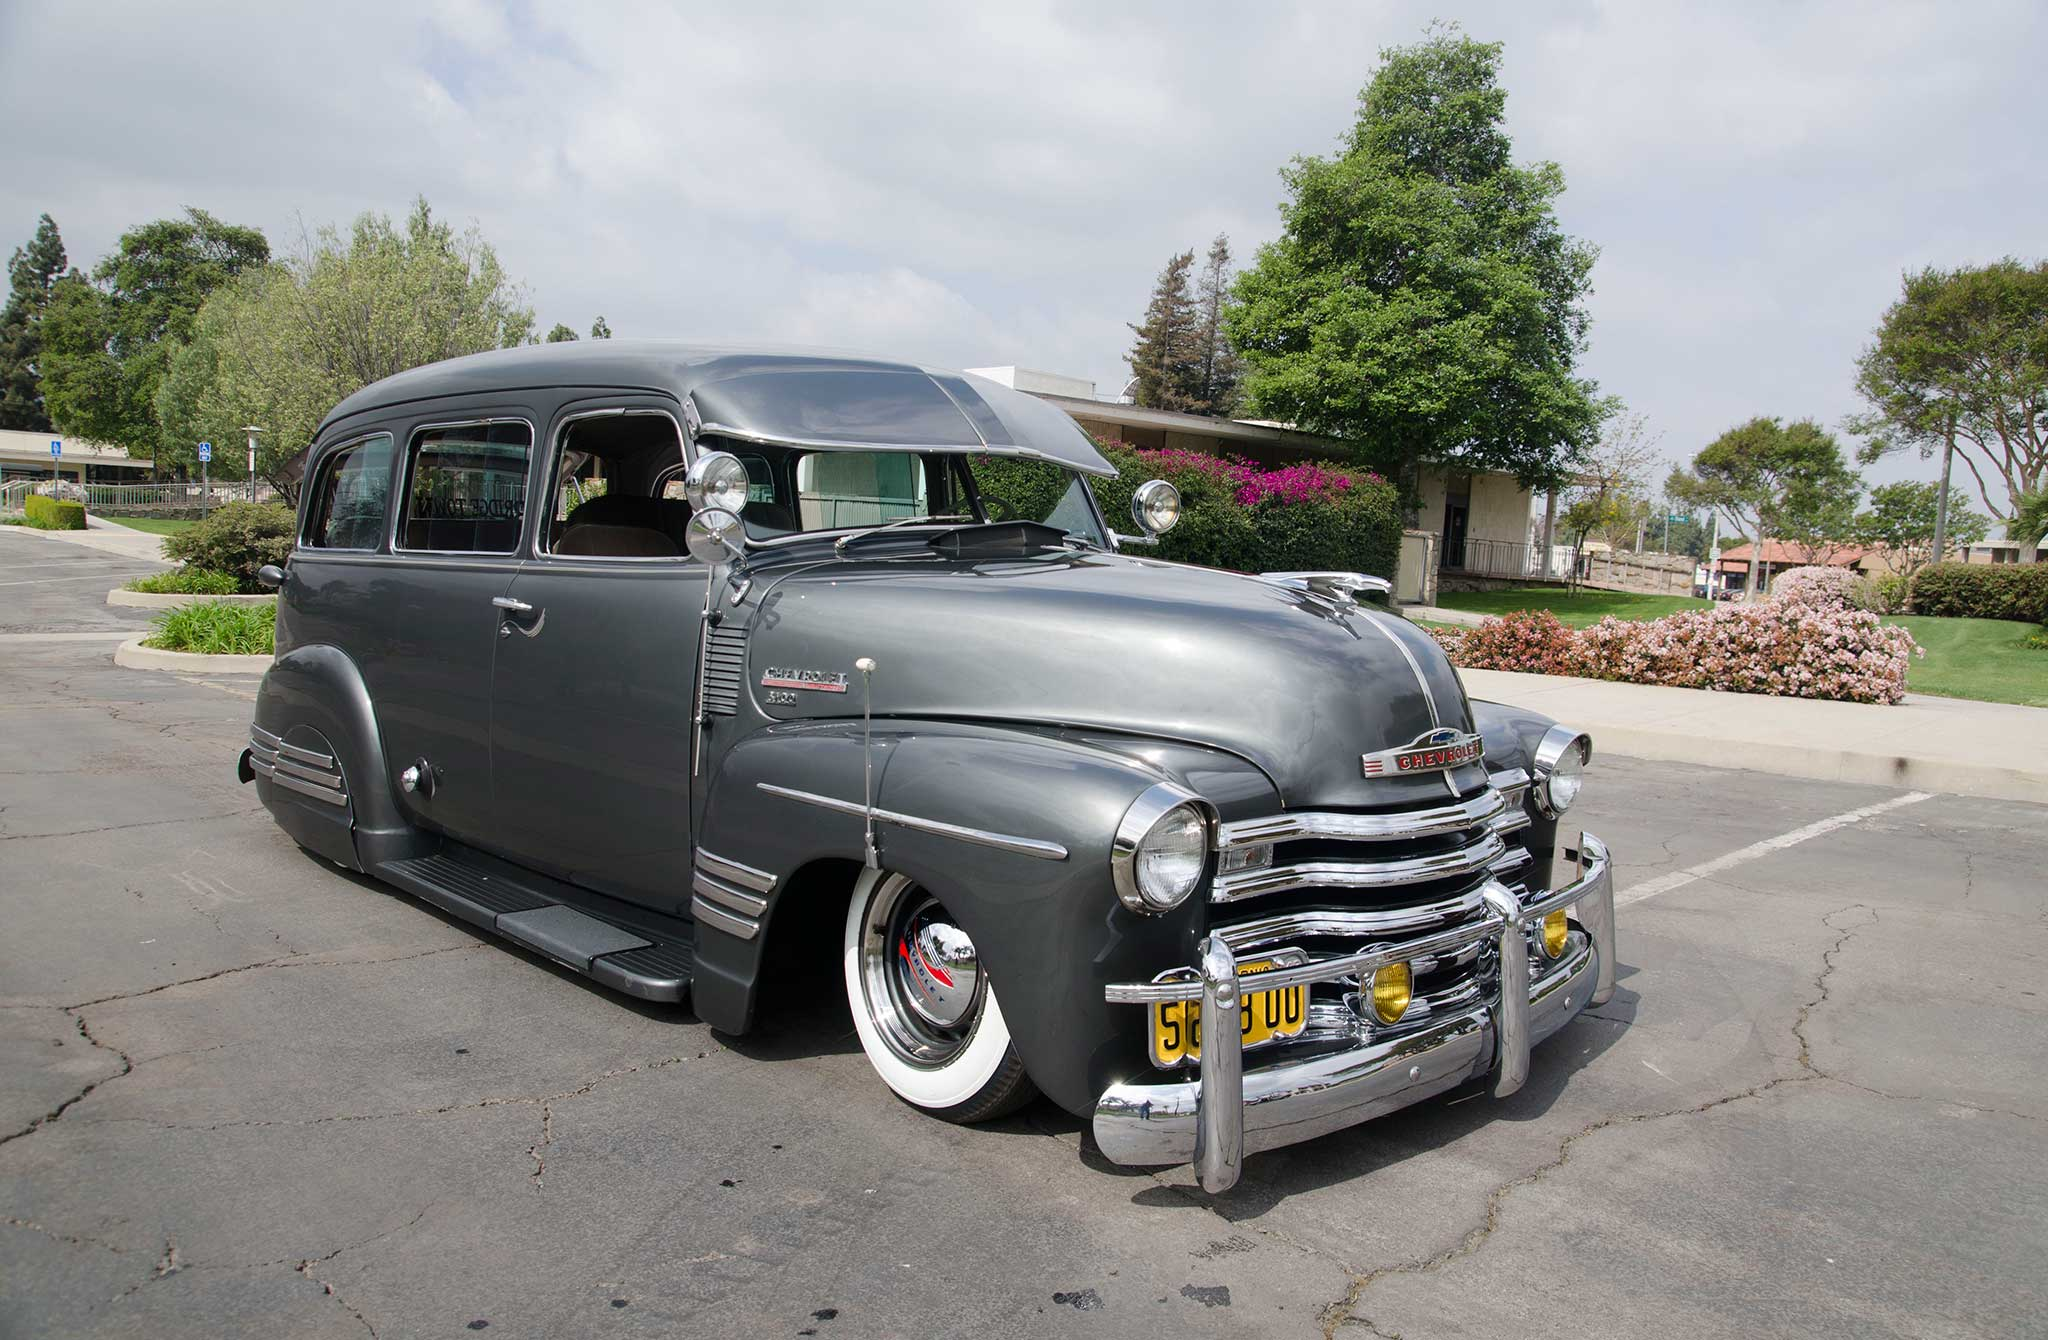 1948 Chevrolet Suburban Bomb Threat